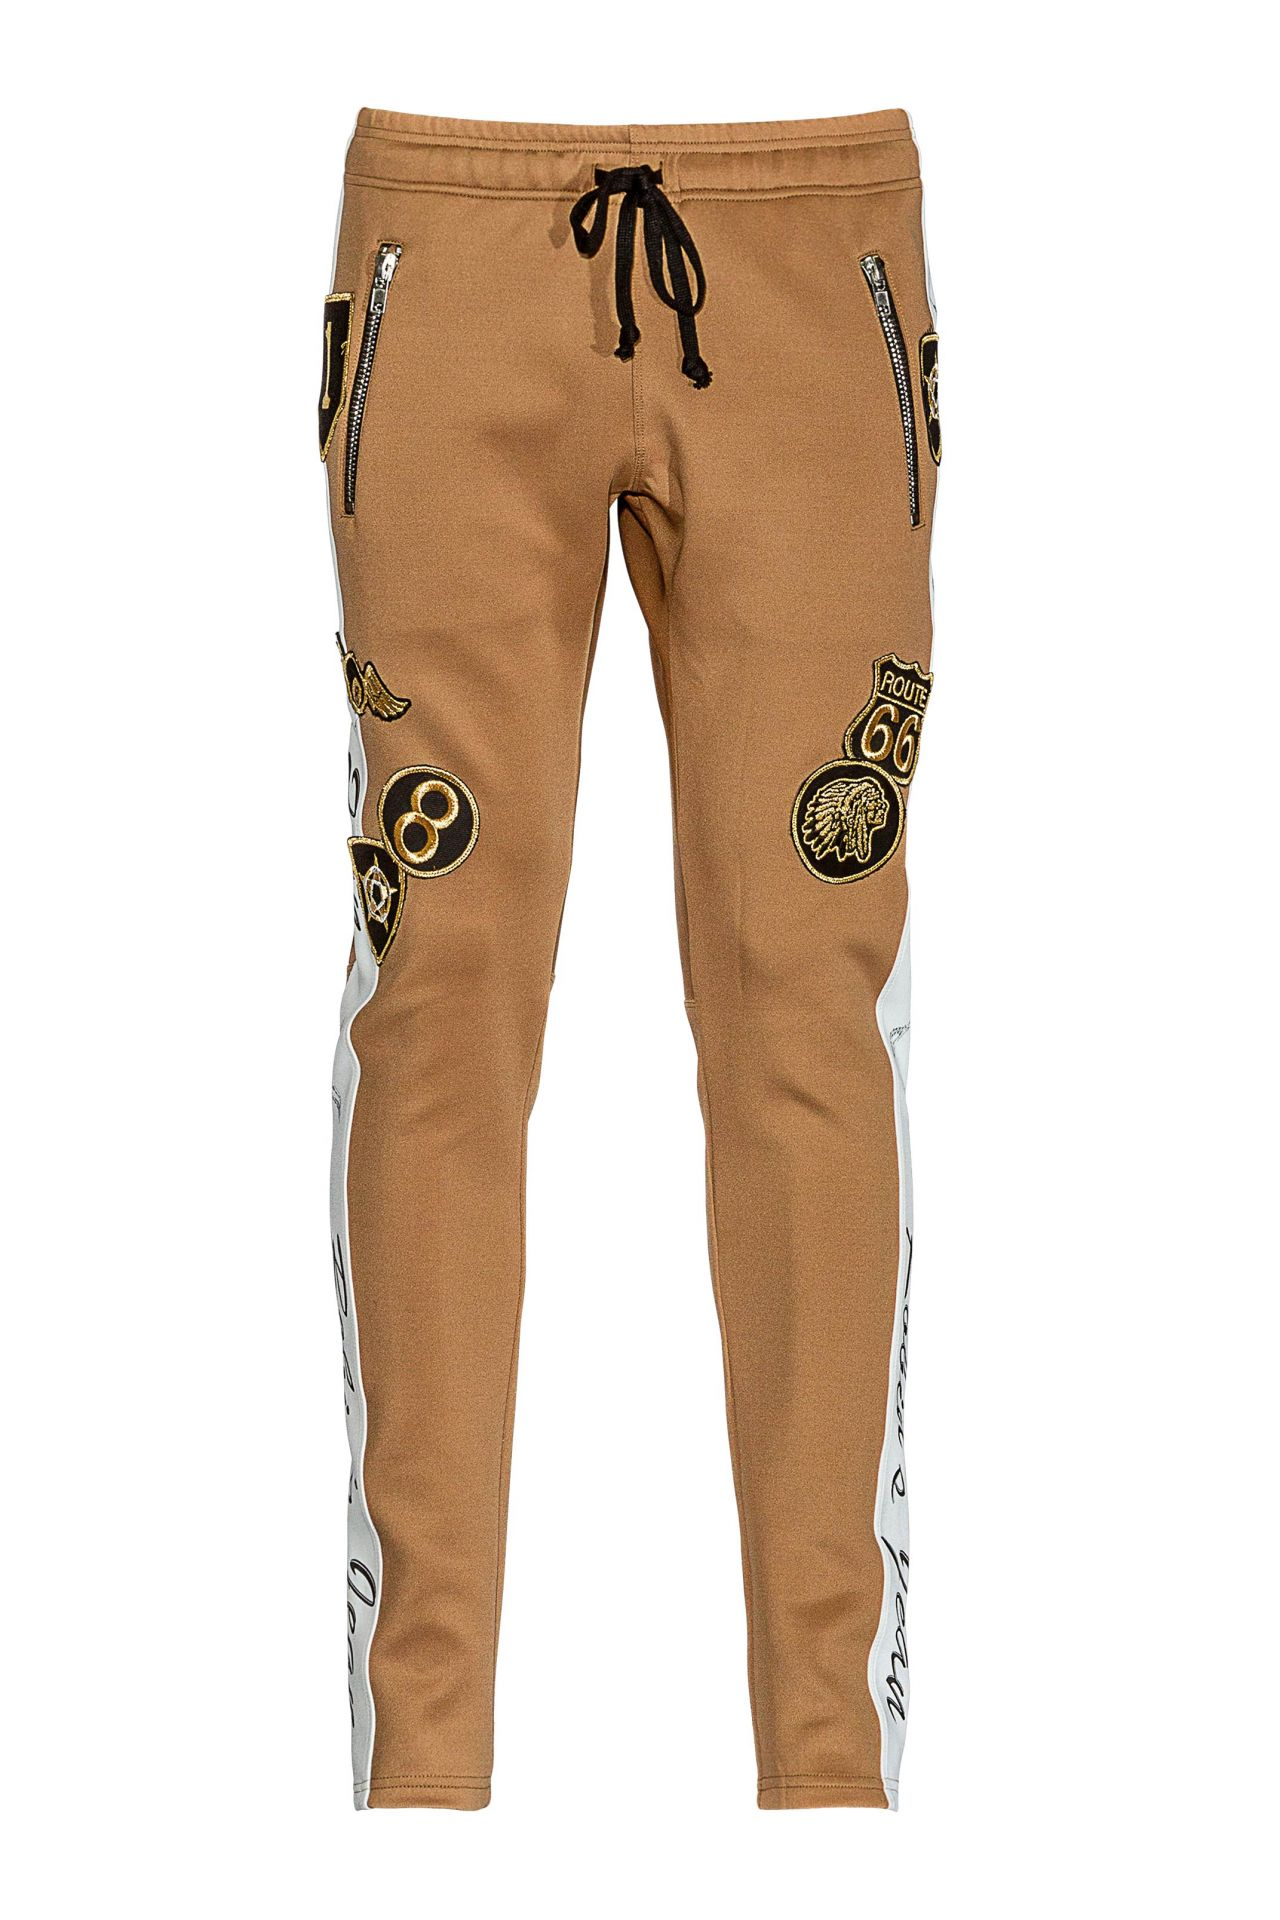 ROBIN TEAM JOGGER WITH PATCHES IN KHAKI